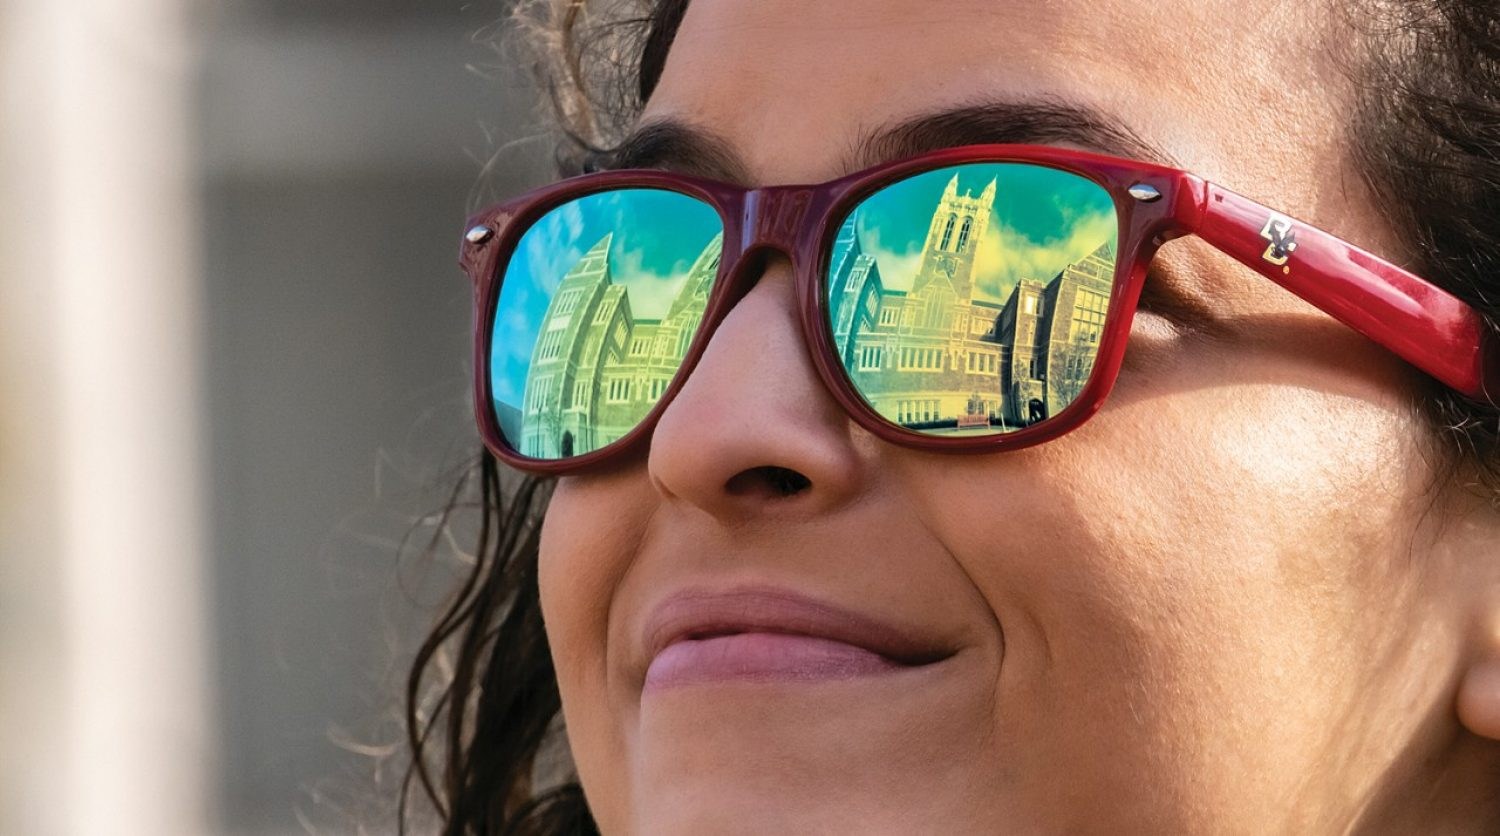 Gasson Hall reflected in sunglasses